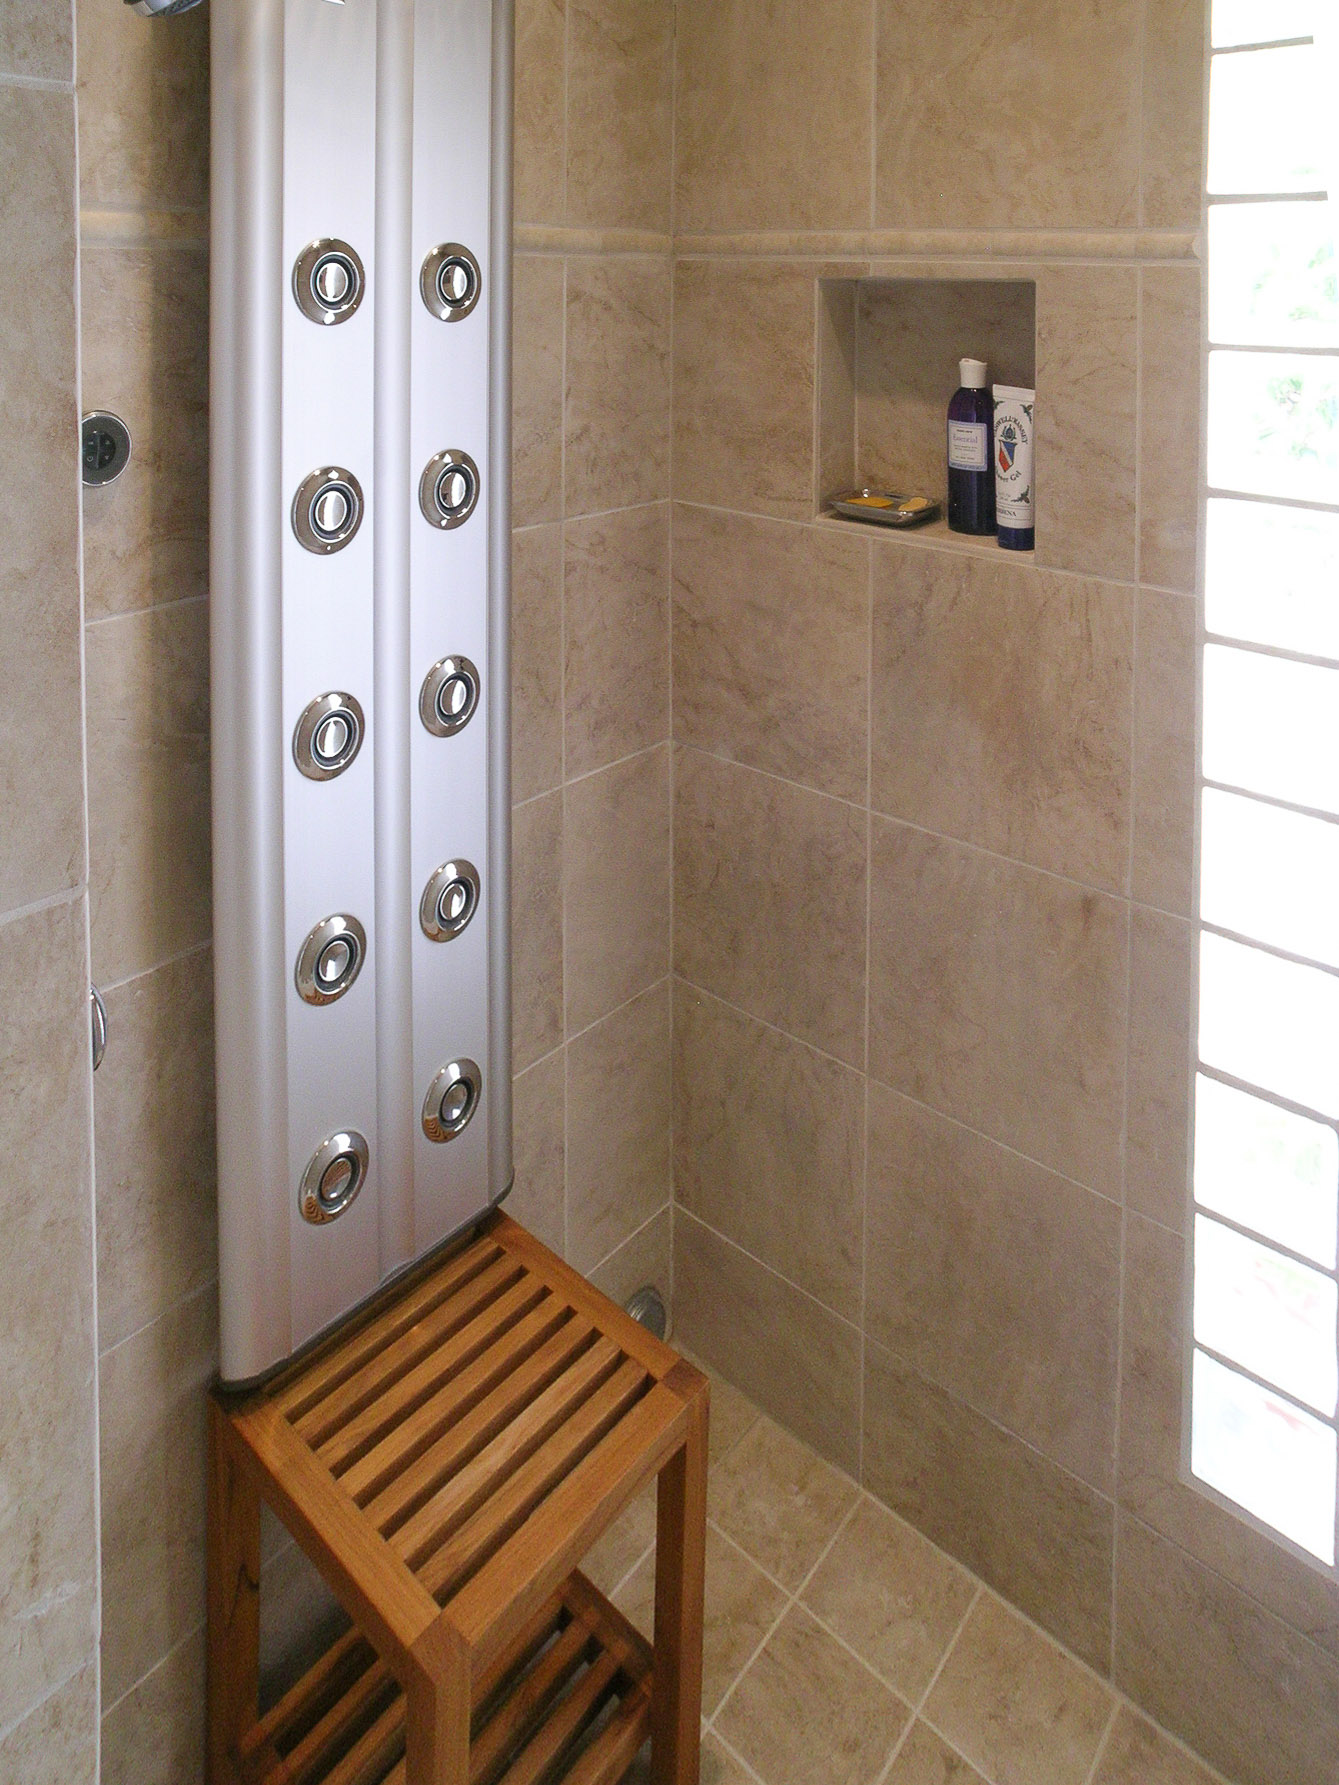 A Full Shower With Waterfall Plumbing Fixture